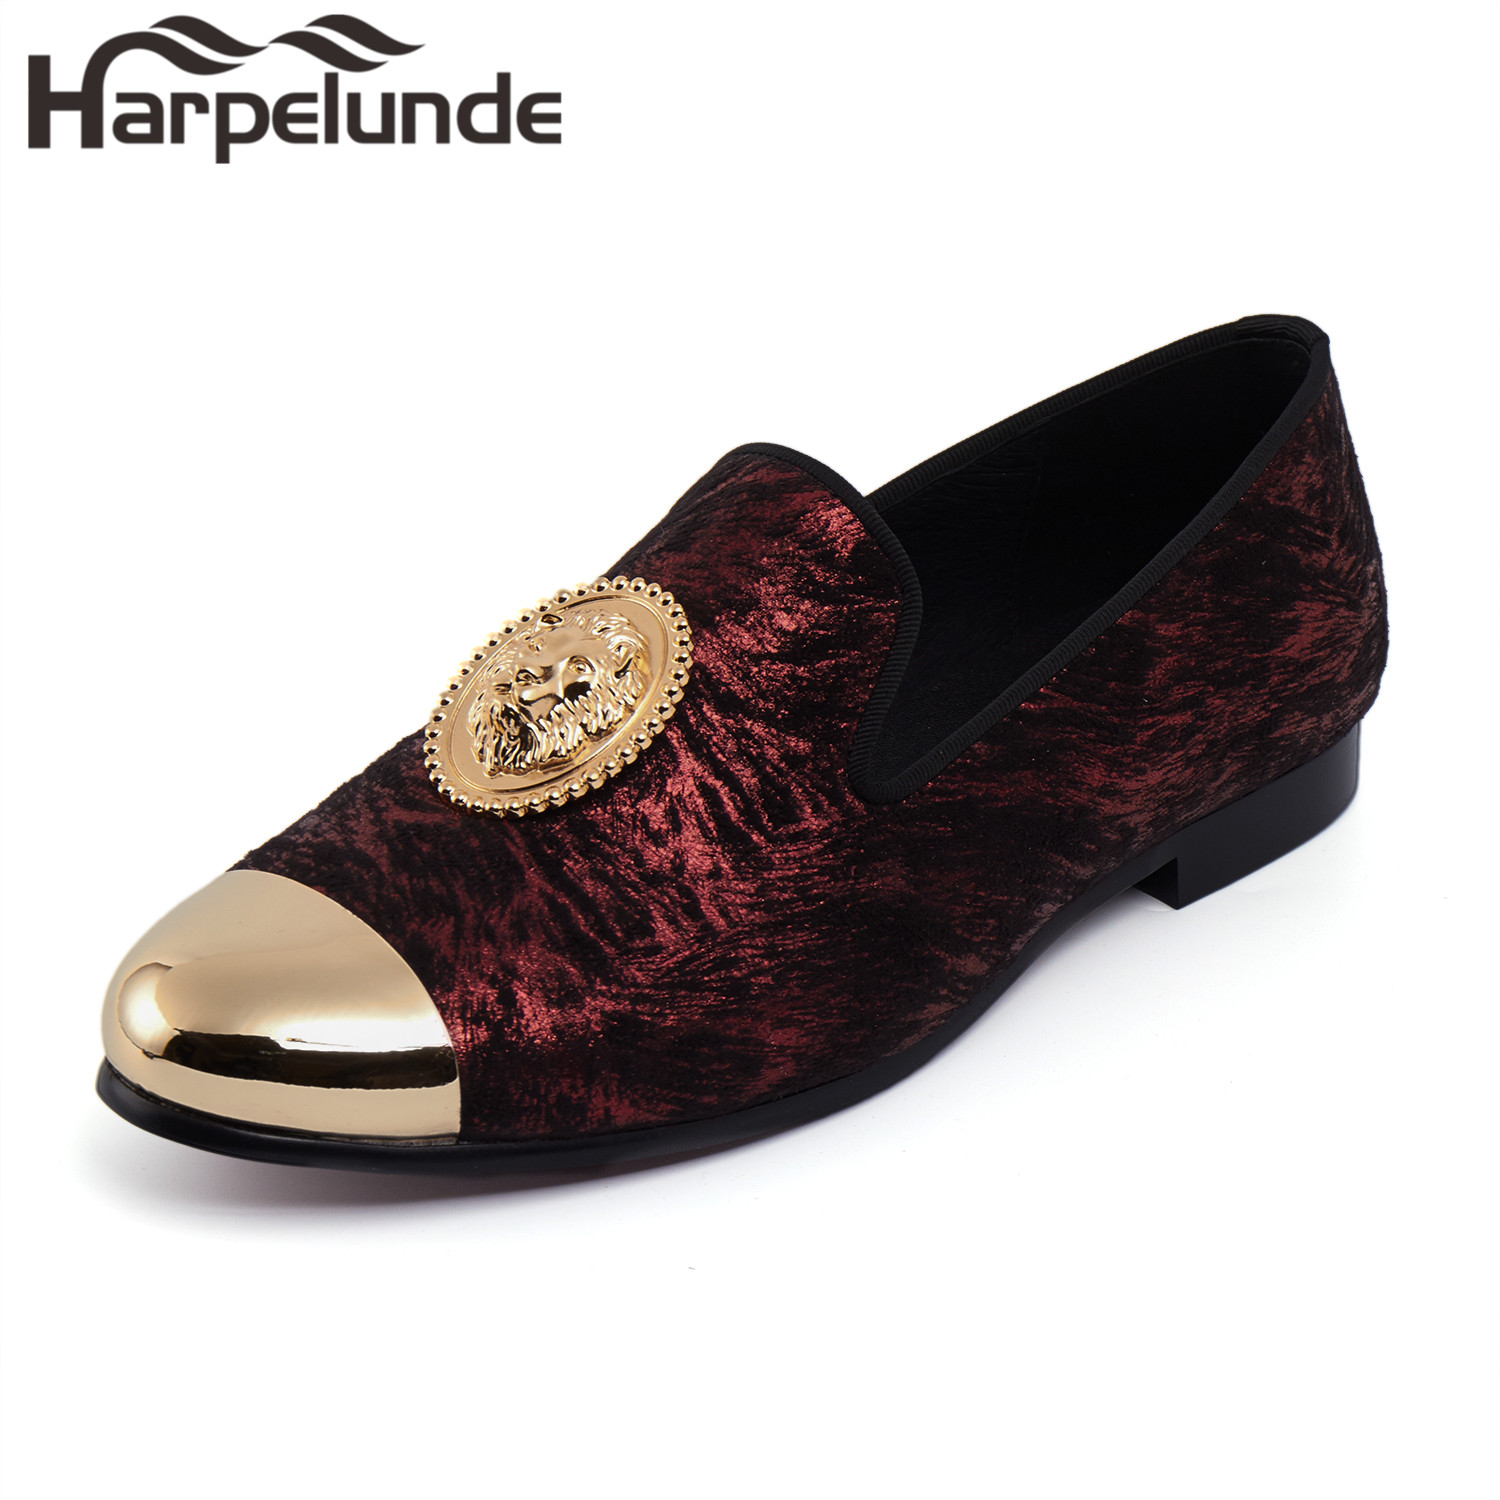 Harpelunde Animal Buckle Men Dress Loafers Printed Velvet Flat Shoes With Copper Cap Toe Size 6 To 14 harpelunde animal buckle men dress loafers printed velvet flat shoes with copper cap toe size 6 to 14